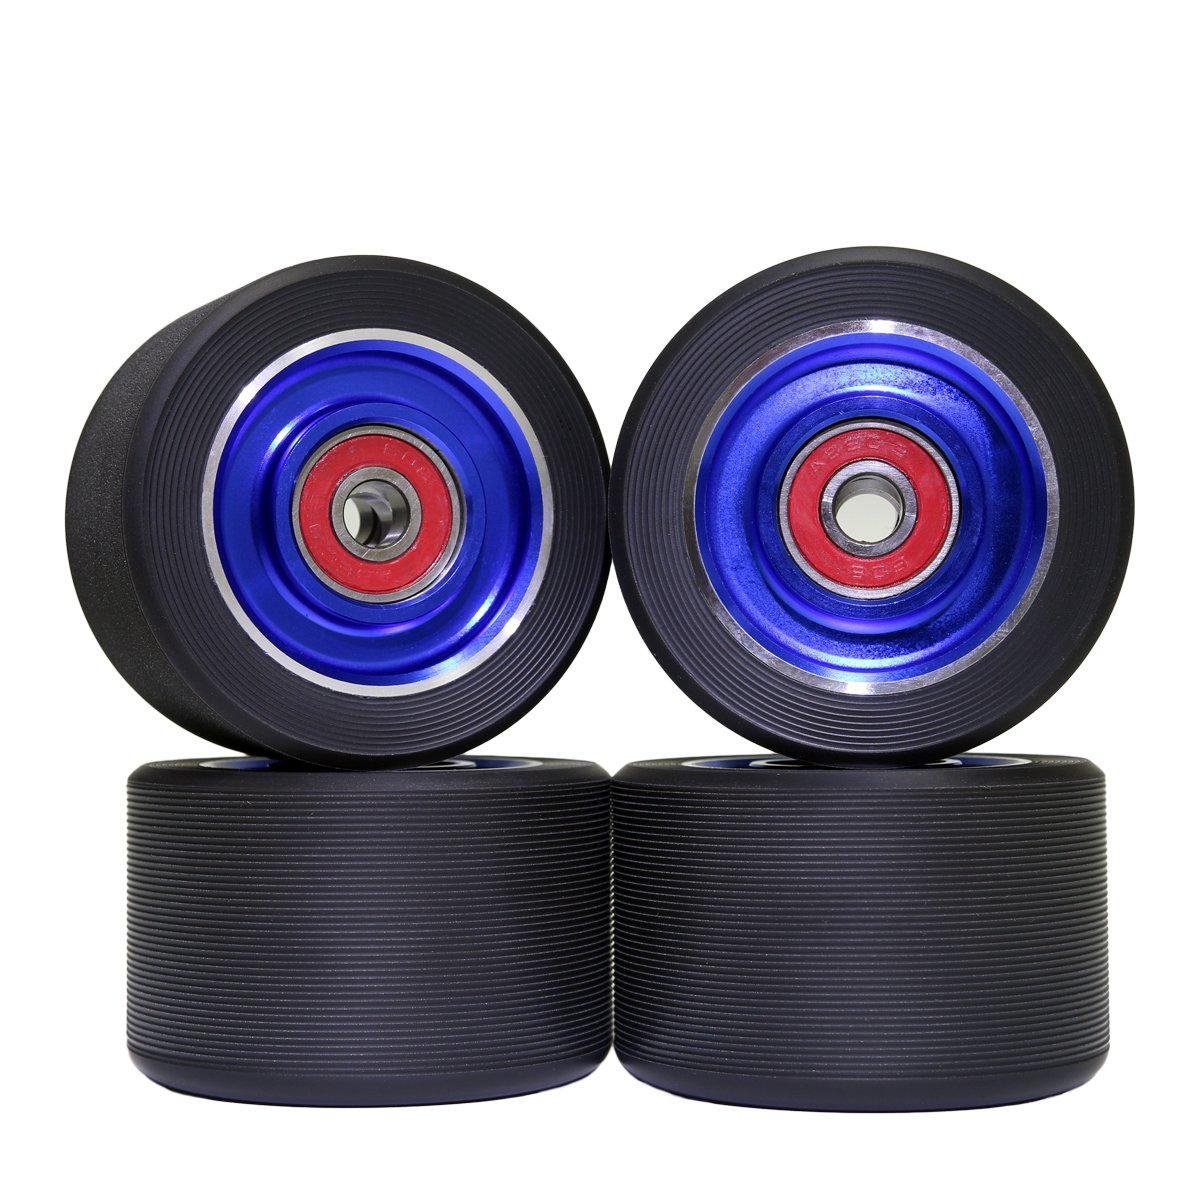 Z-FIRST 62mm Roller Skates Wheels Aluminum Alloy Speed Skate Wheels Replacement Wheels with Abec-9 Bearing (Pack of 4) (Black-Blue)